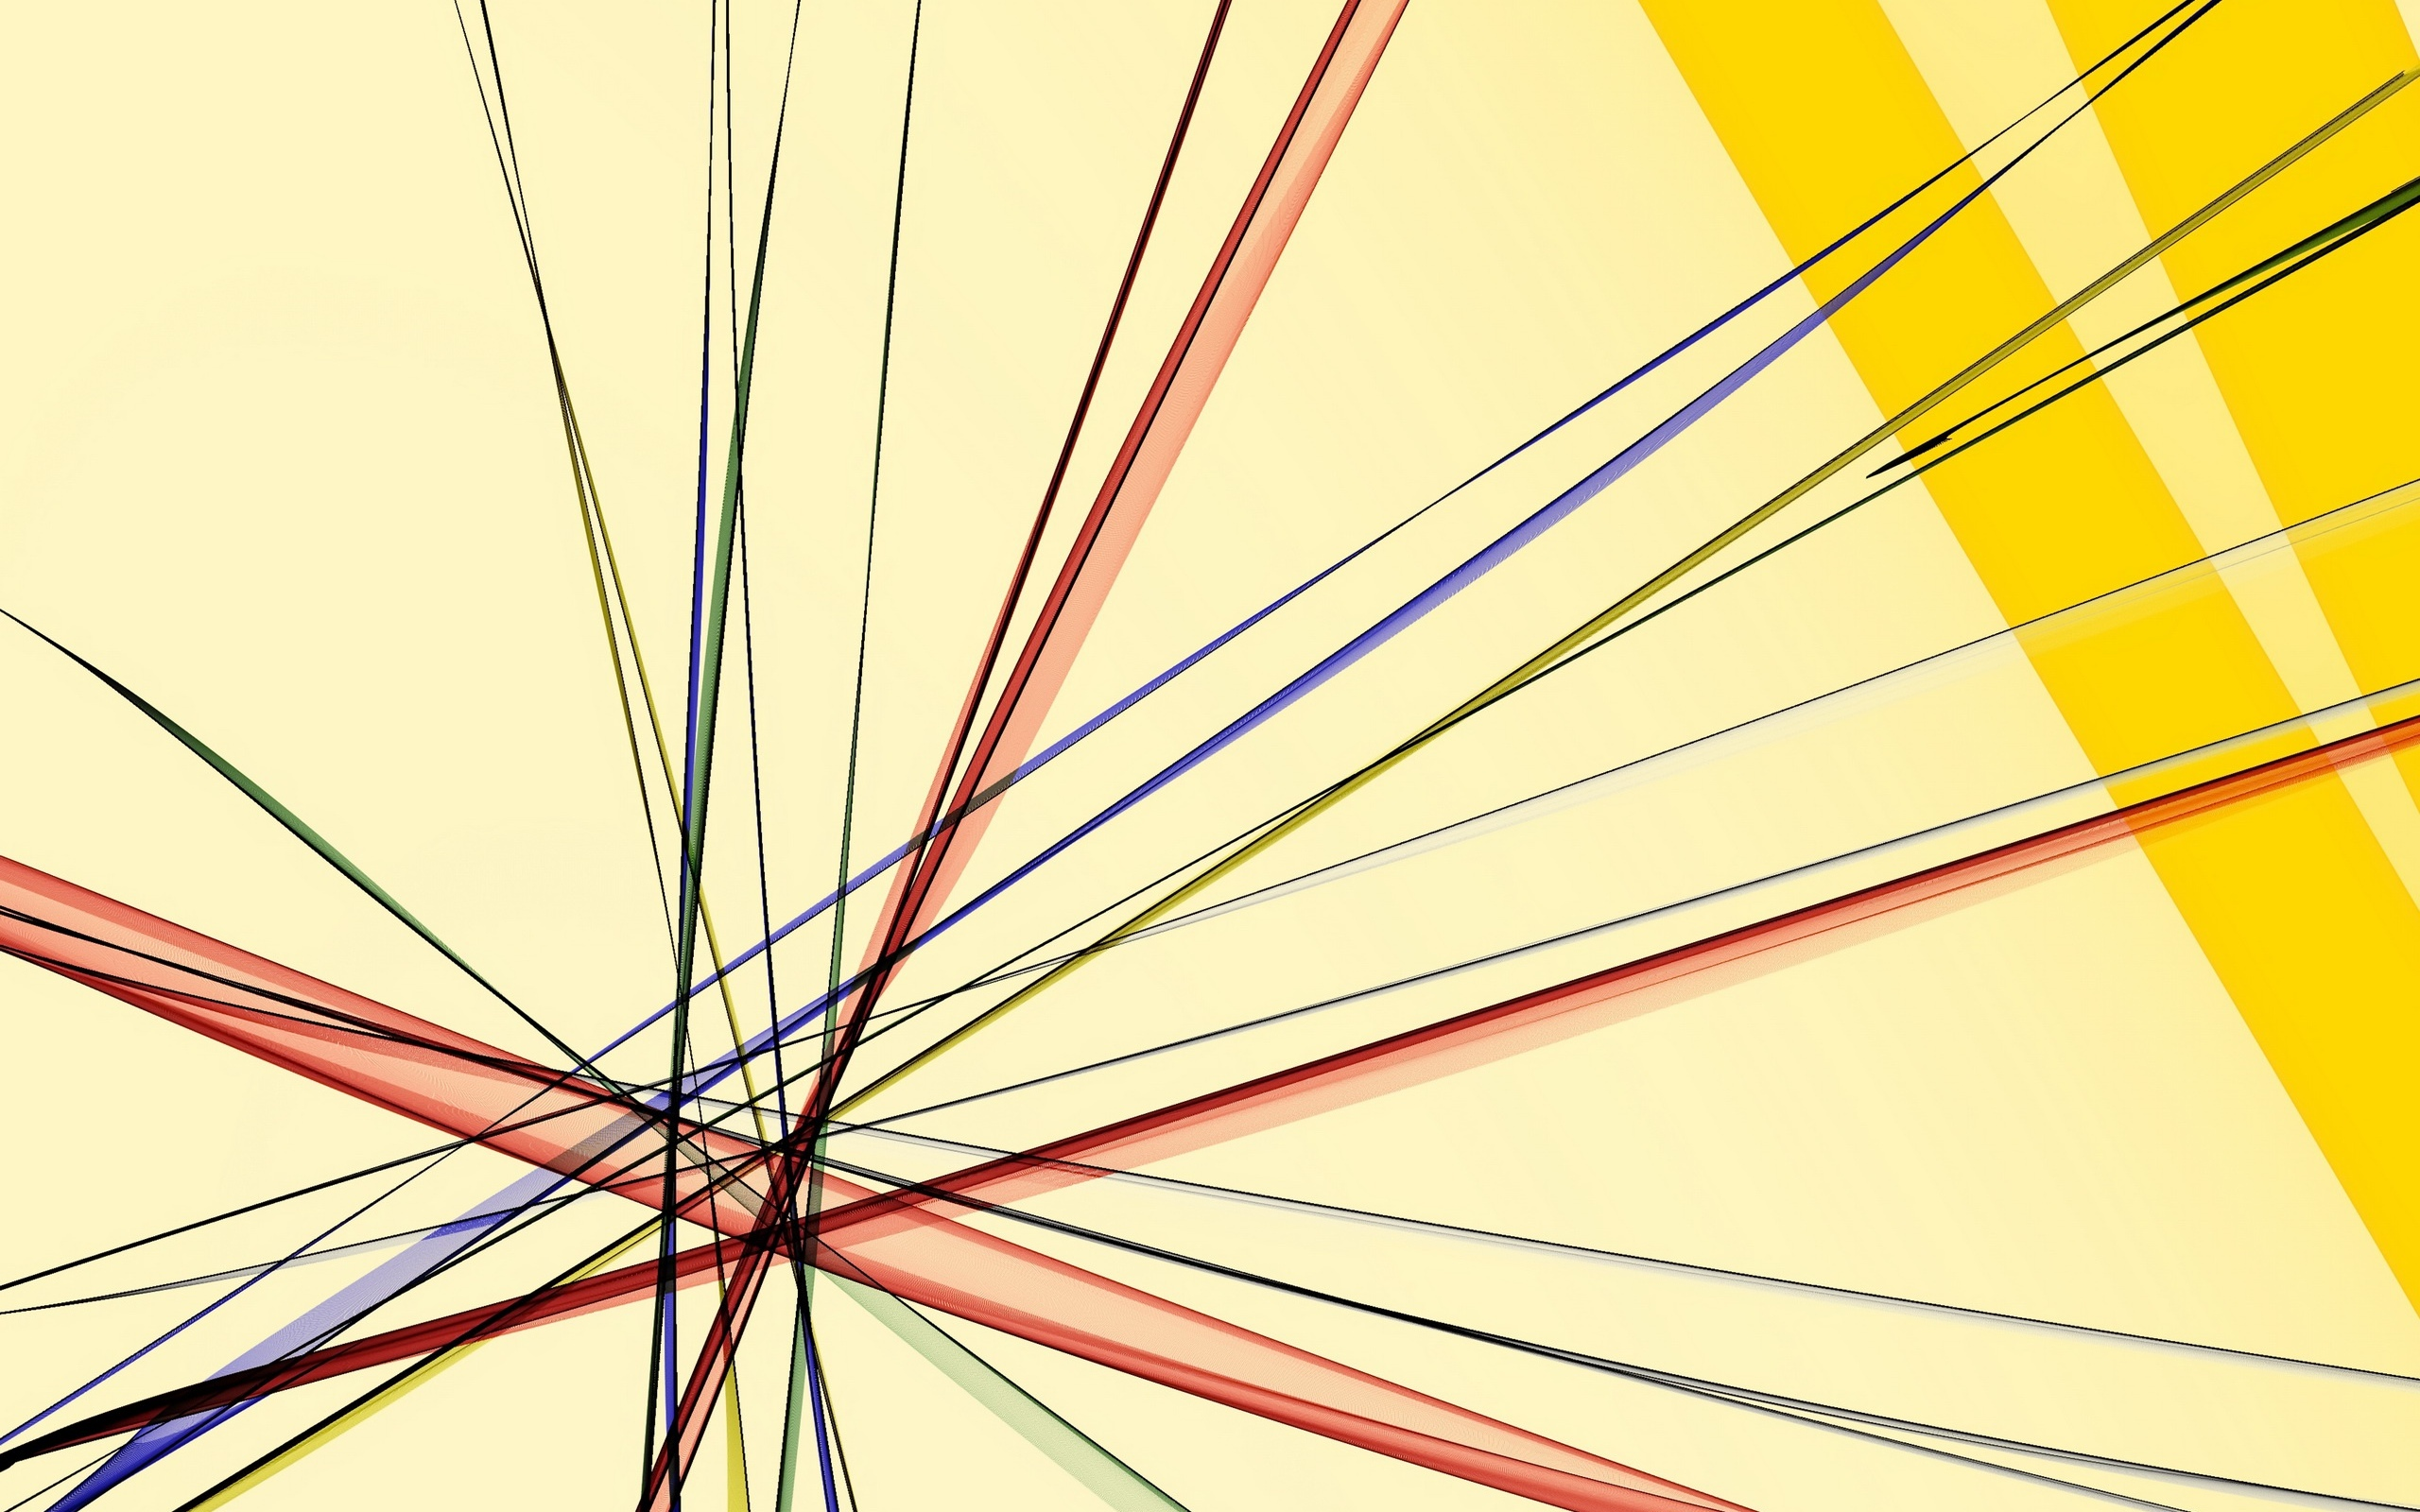 Abstract background, colorful lines 2560x1600 wallpaper